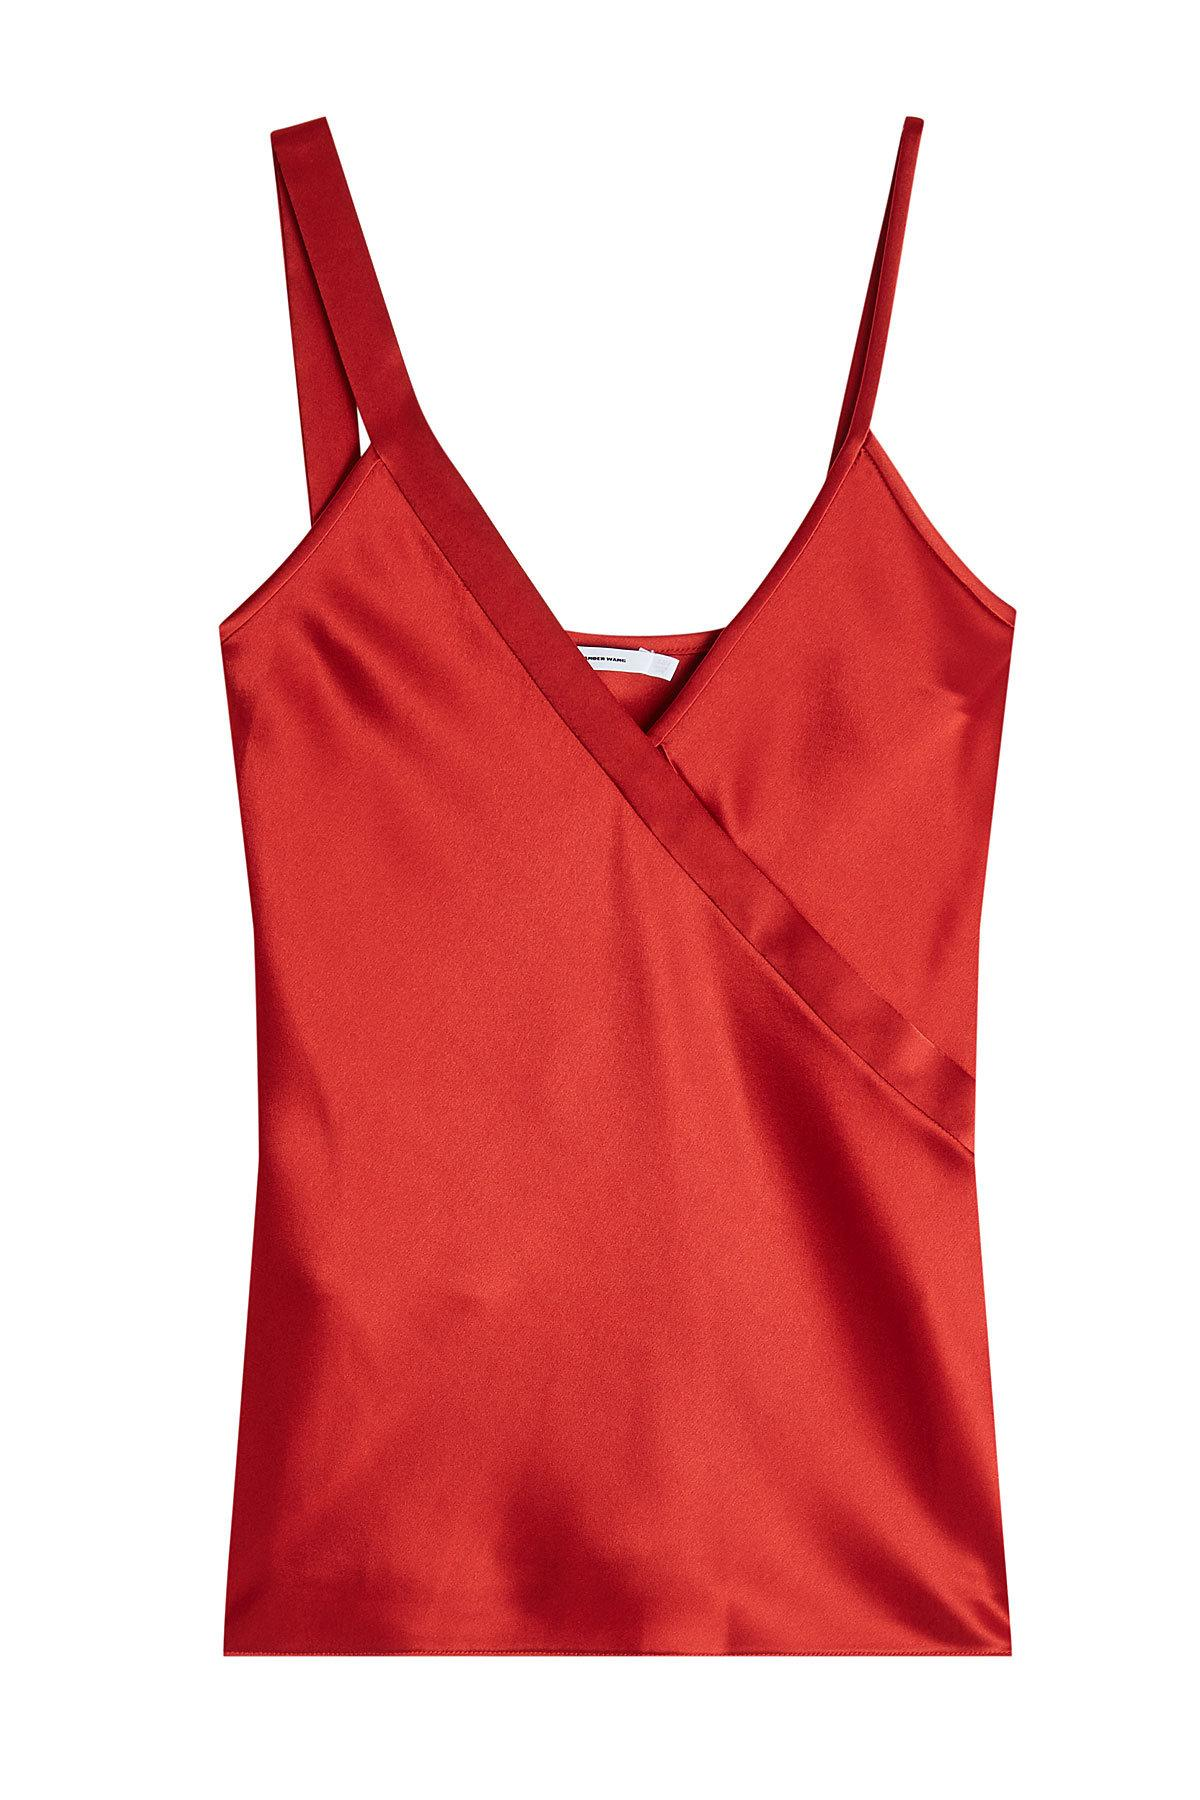 T By Alexander Wang Satin Camisole In Red